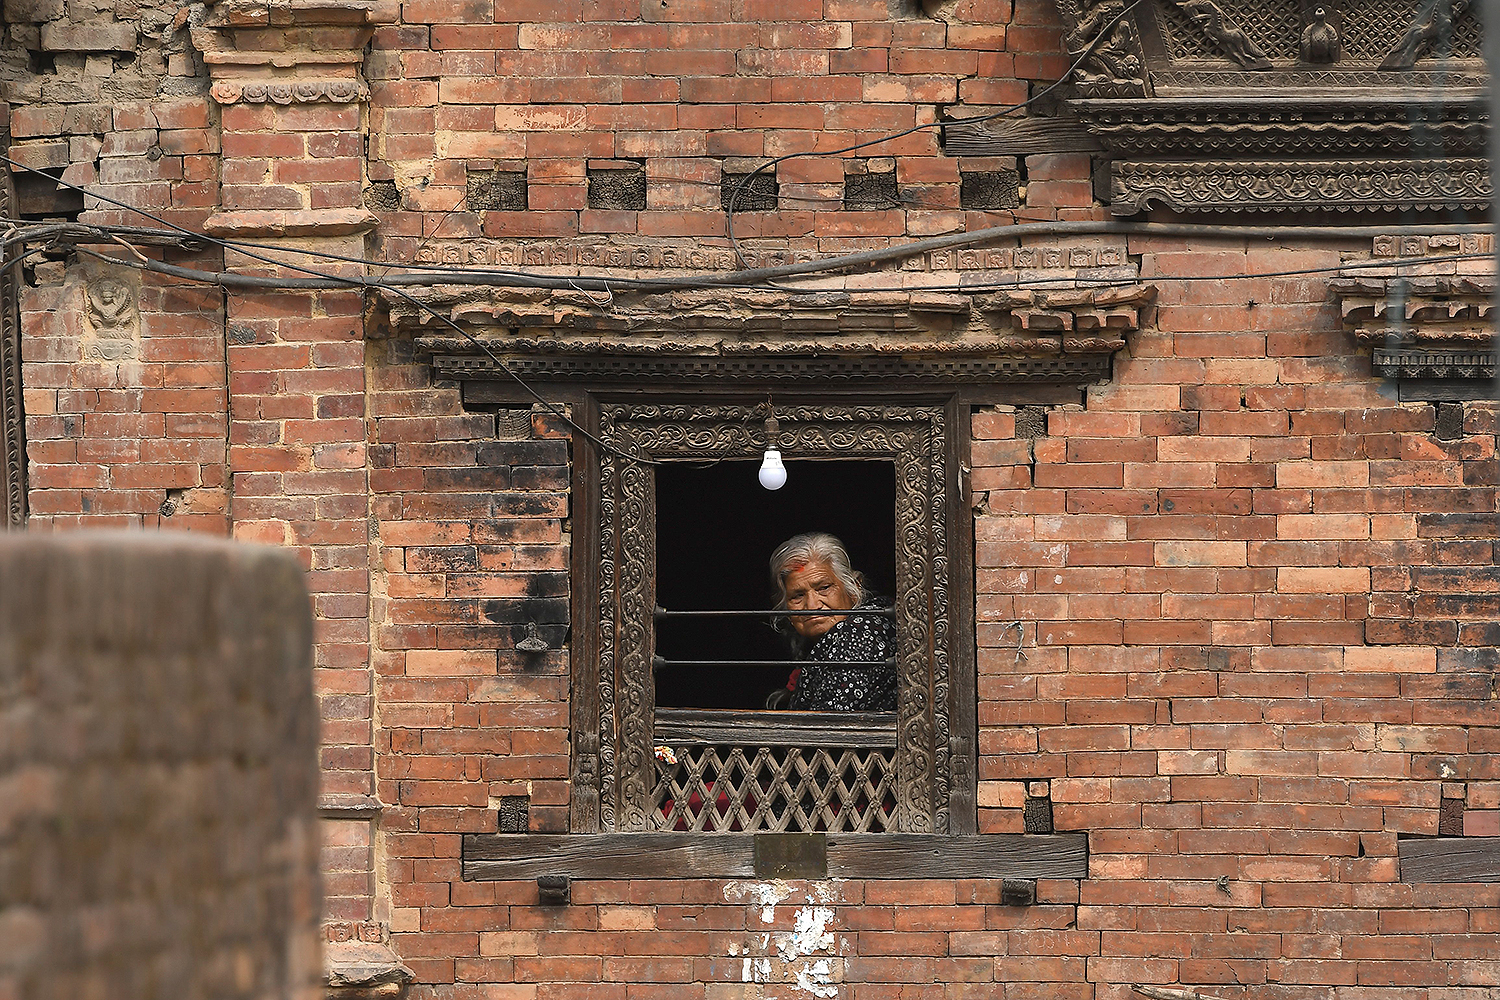 A woman looks outside her window during a nationwide lockdown in Bhaktapur, Nepal, on the outskirts of Kathmandu, on April 13. PRAKASH MATHEMA/AFP via Getty Images